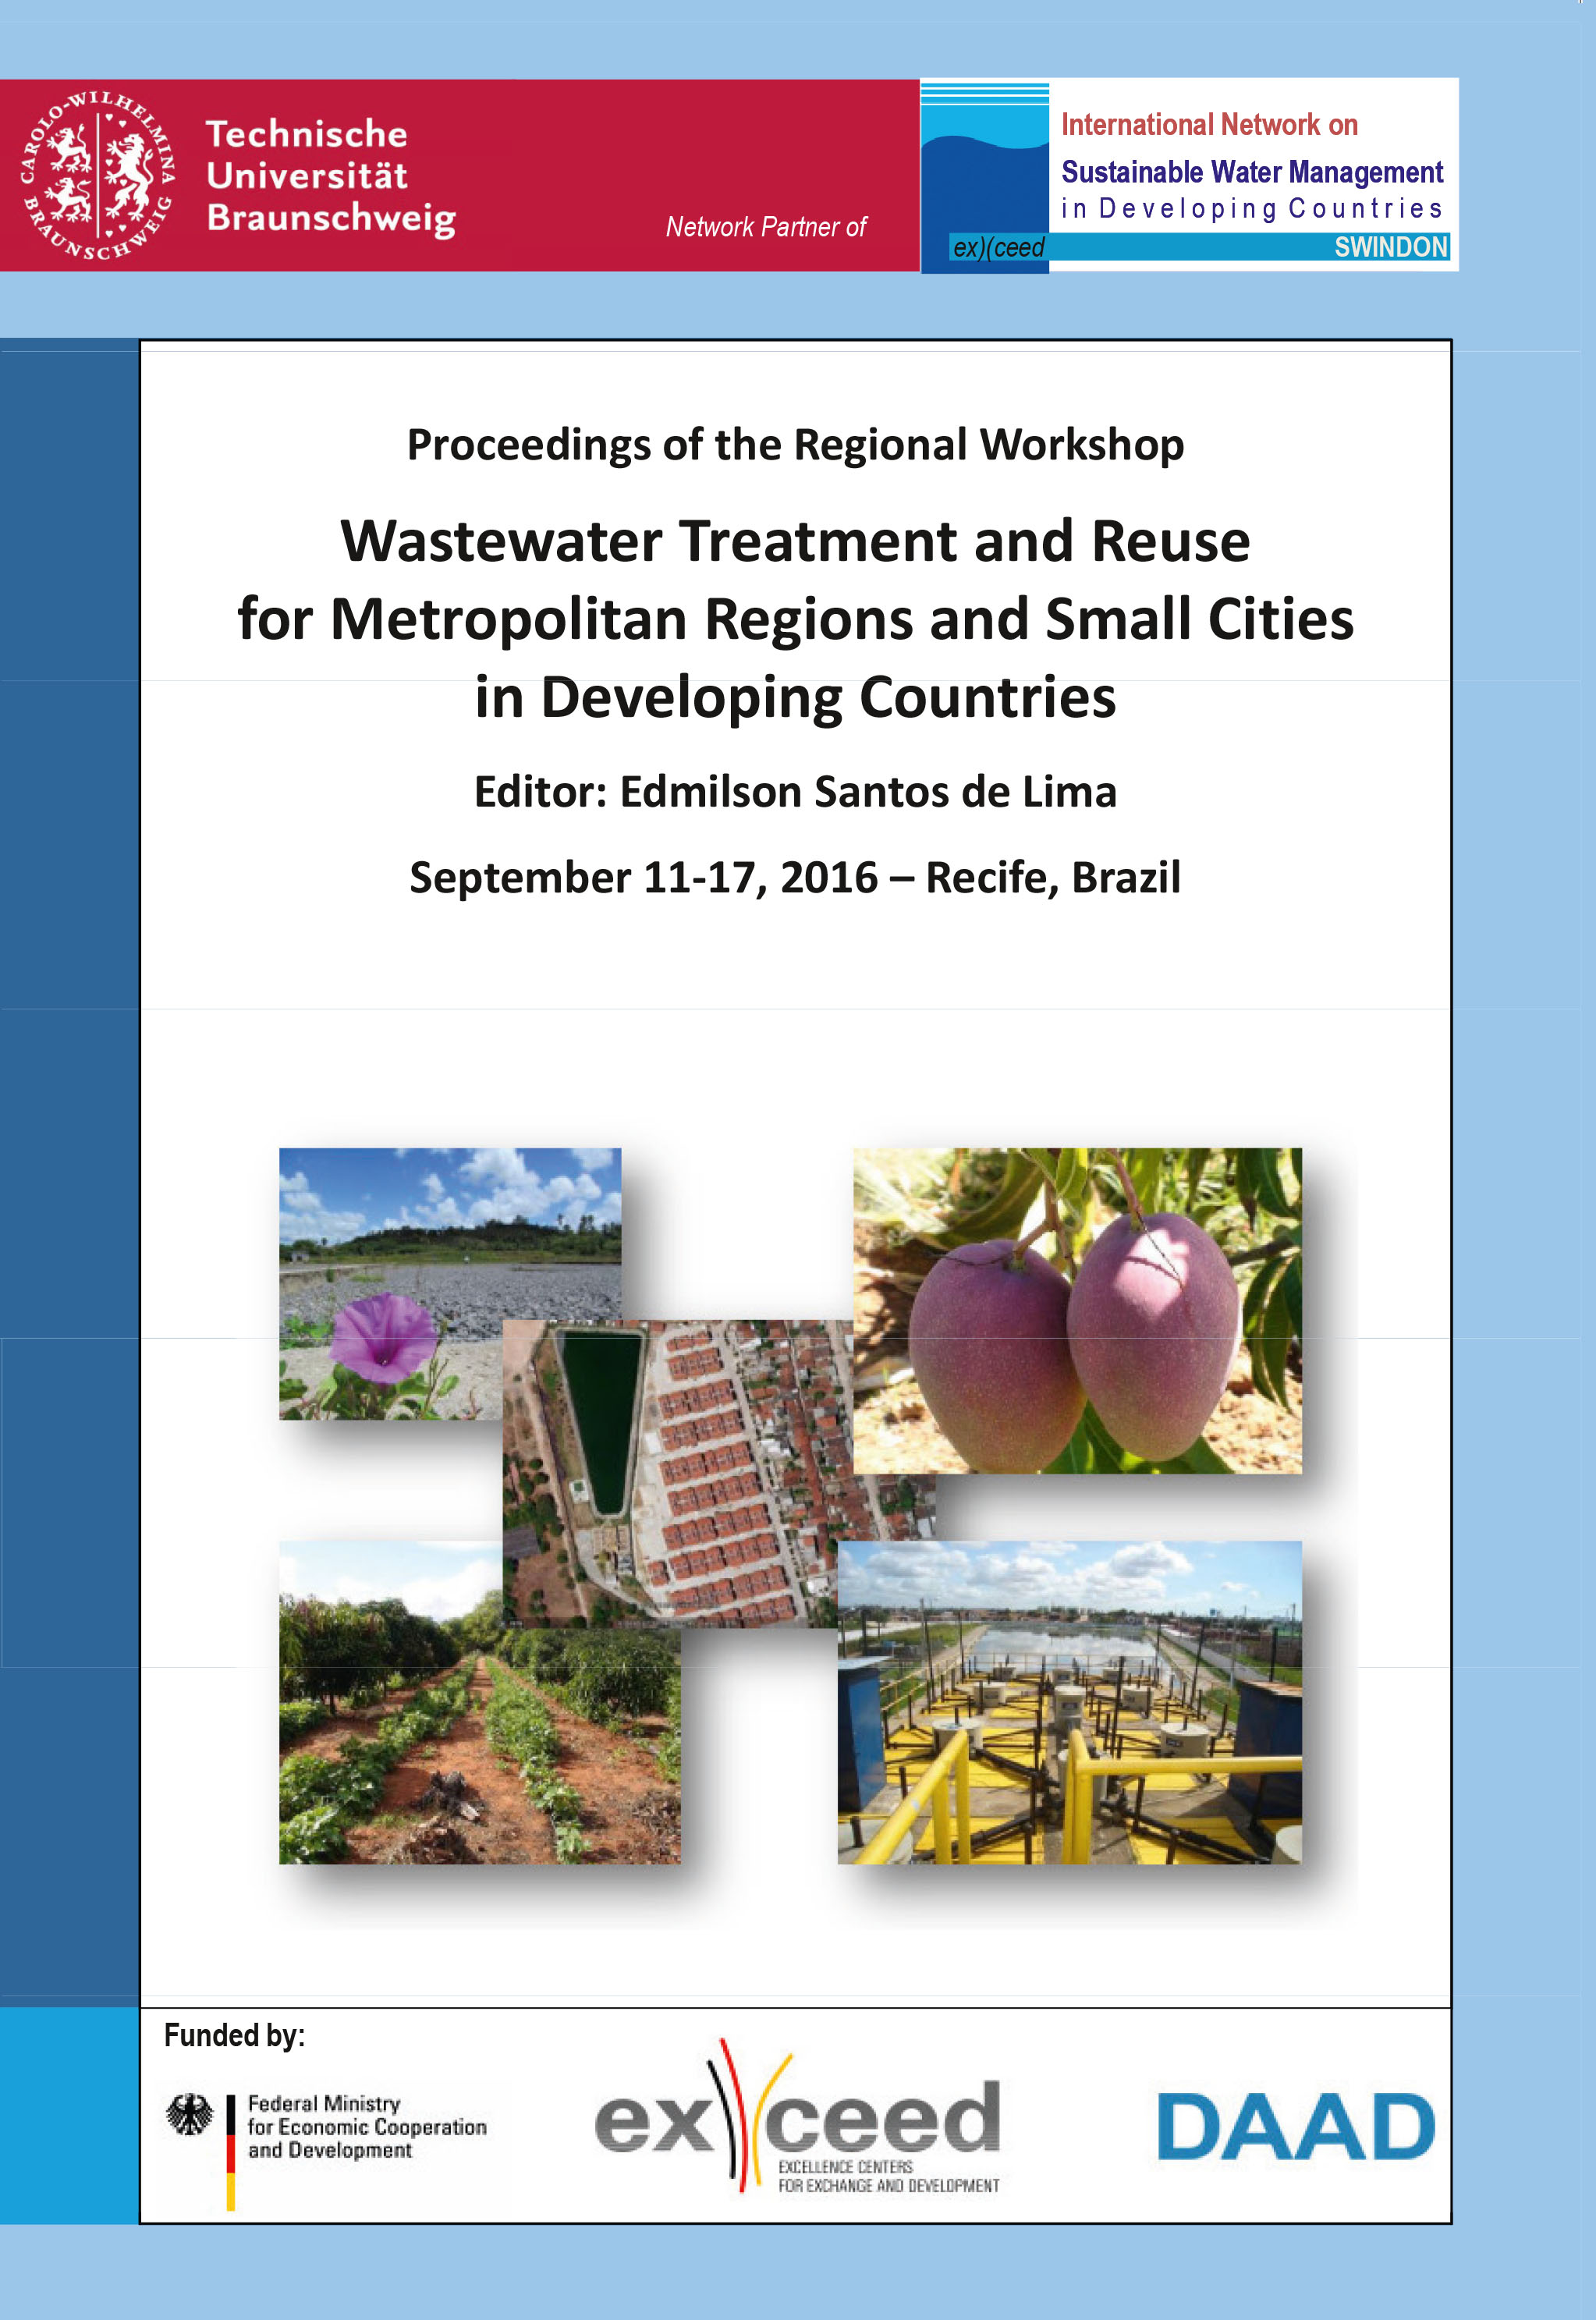 Wastewater Treatment and Reuse for Metropolitan Regions and Small Cities in Developing Countries